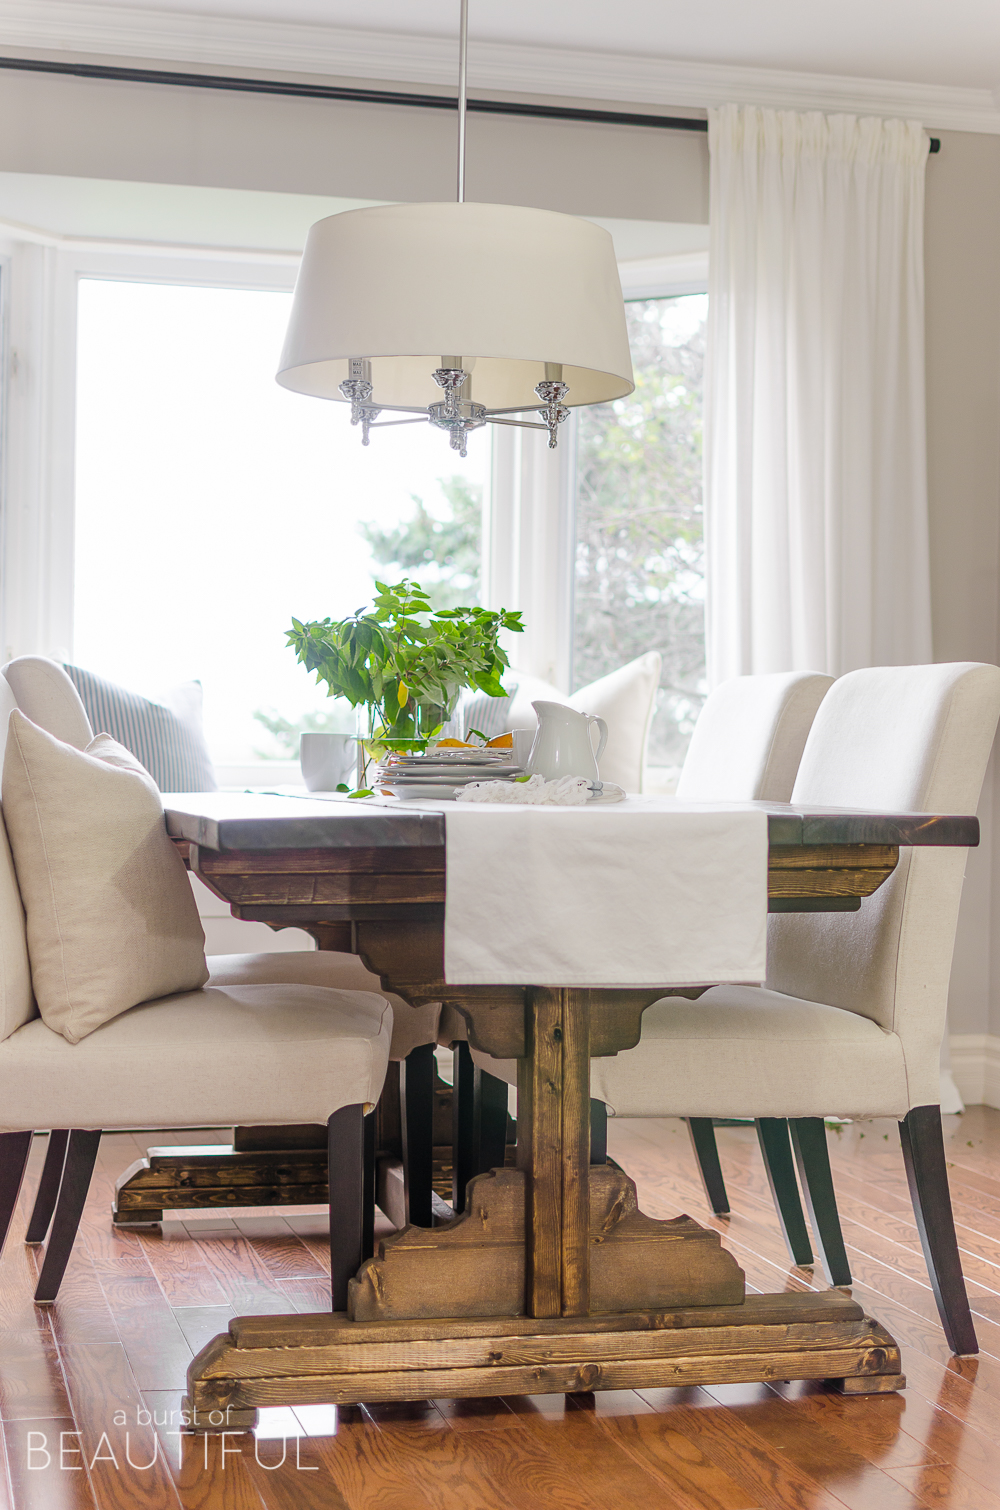 A bright and inviting dining room boasts simple farmhouse style with a DIY farmhouse dining table and classic window bench.